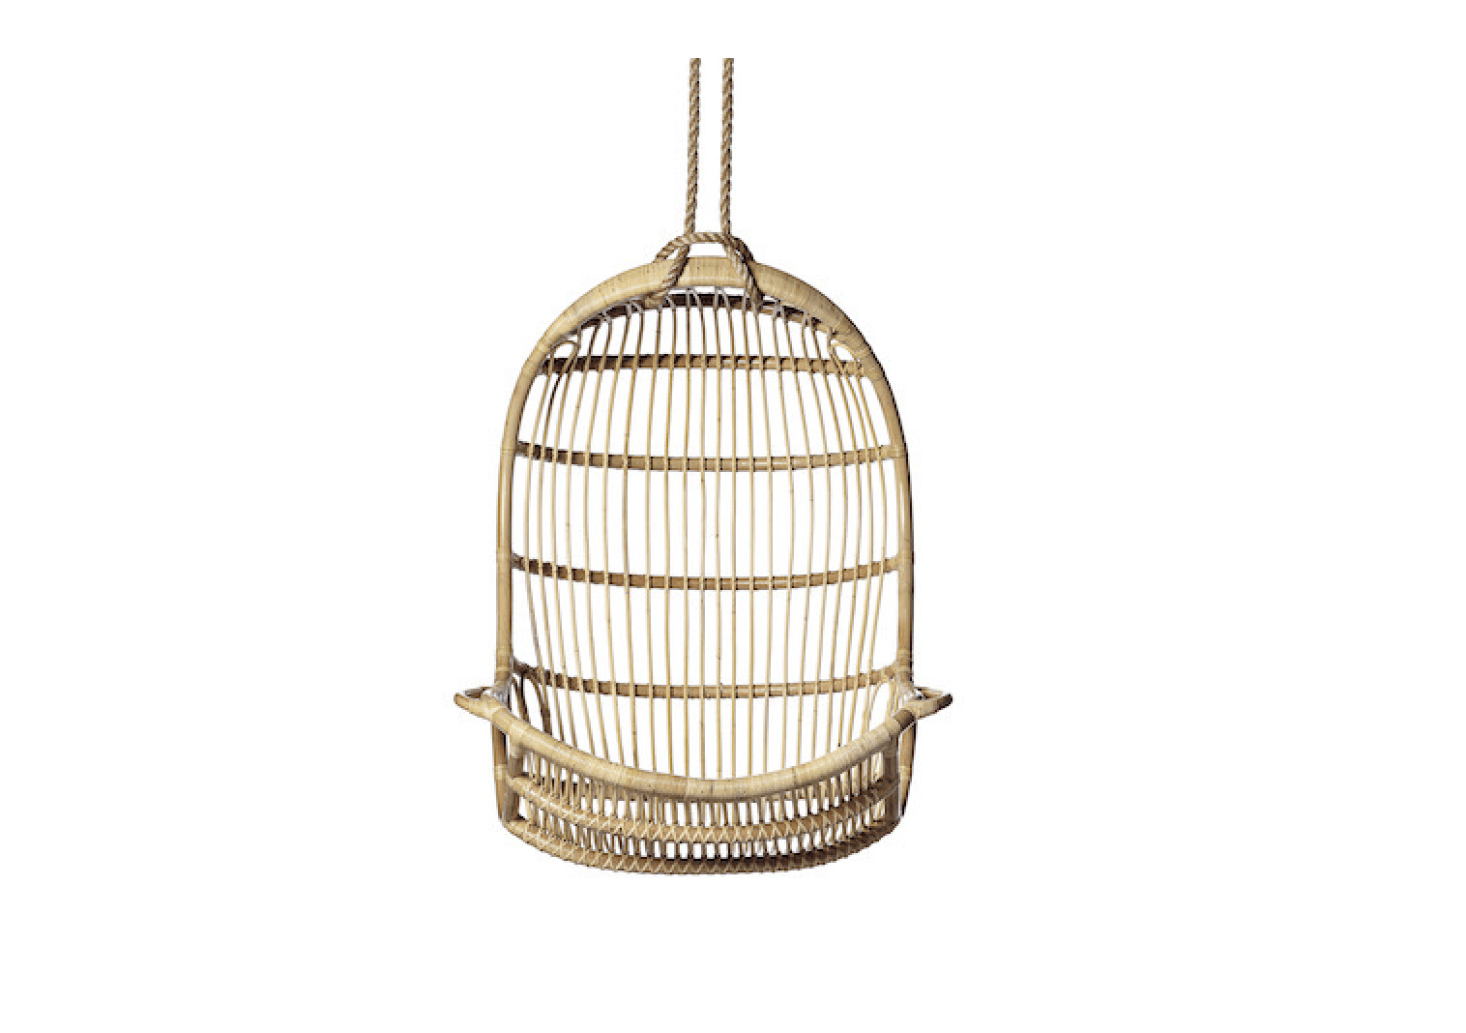 Made In Indonesia Of Hand Bent Rattan, Serena And Lilyu0027s Hanging Rattan  Chair Is